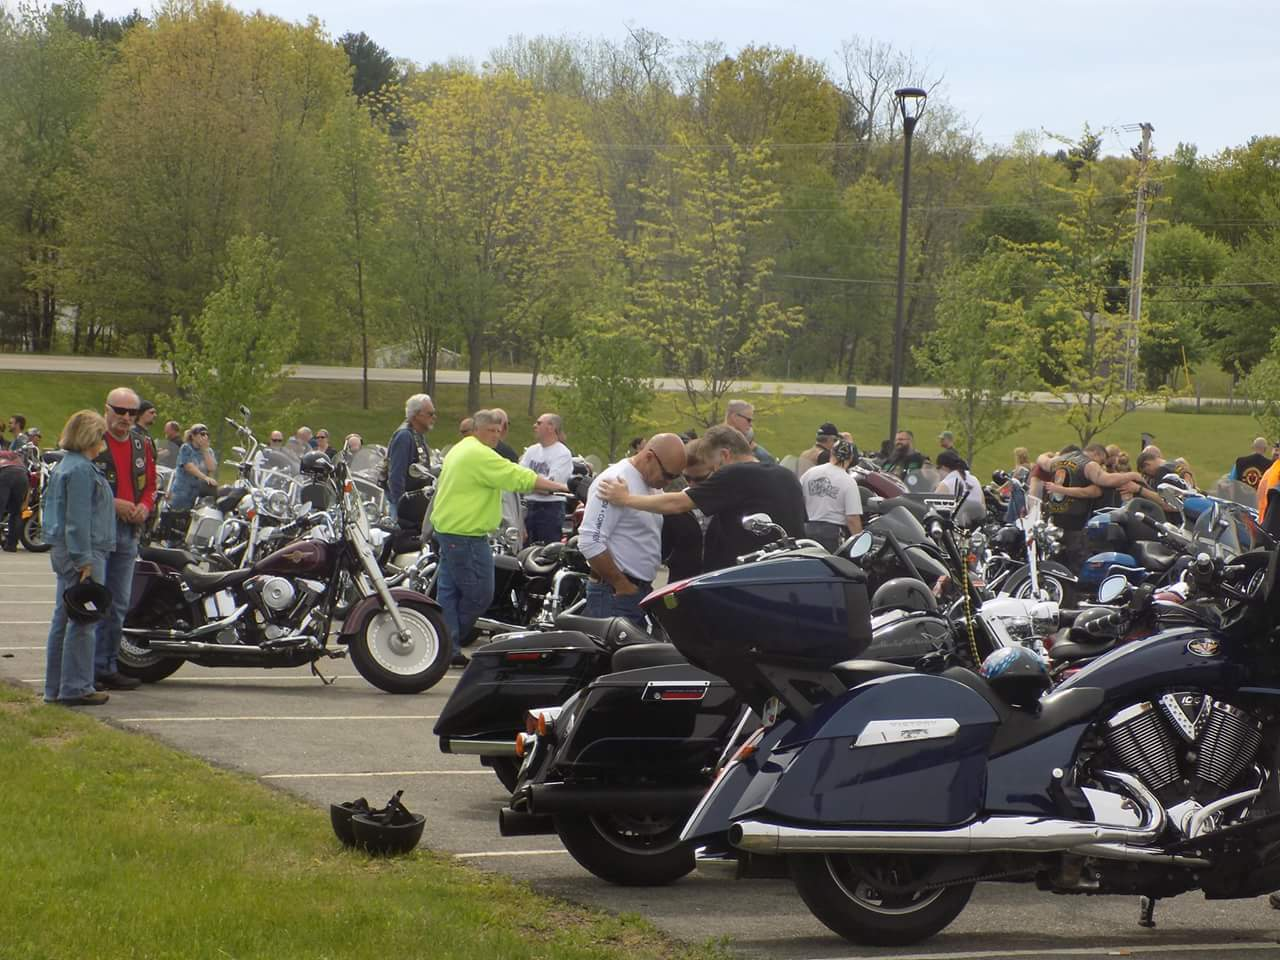 Blessing of the Bikes coming up on May 20